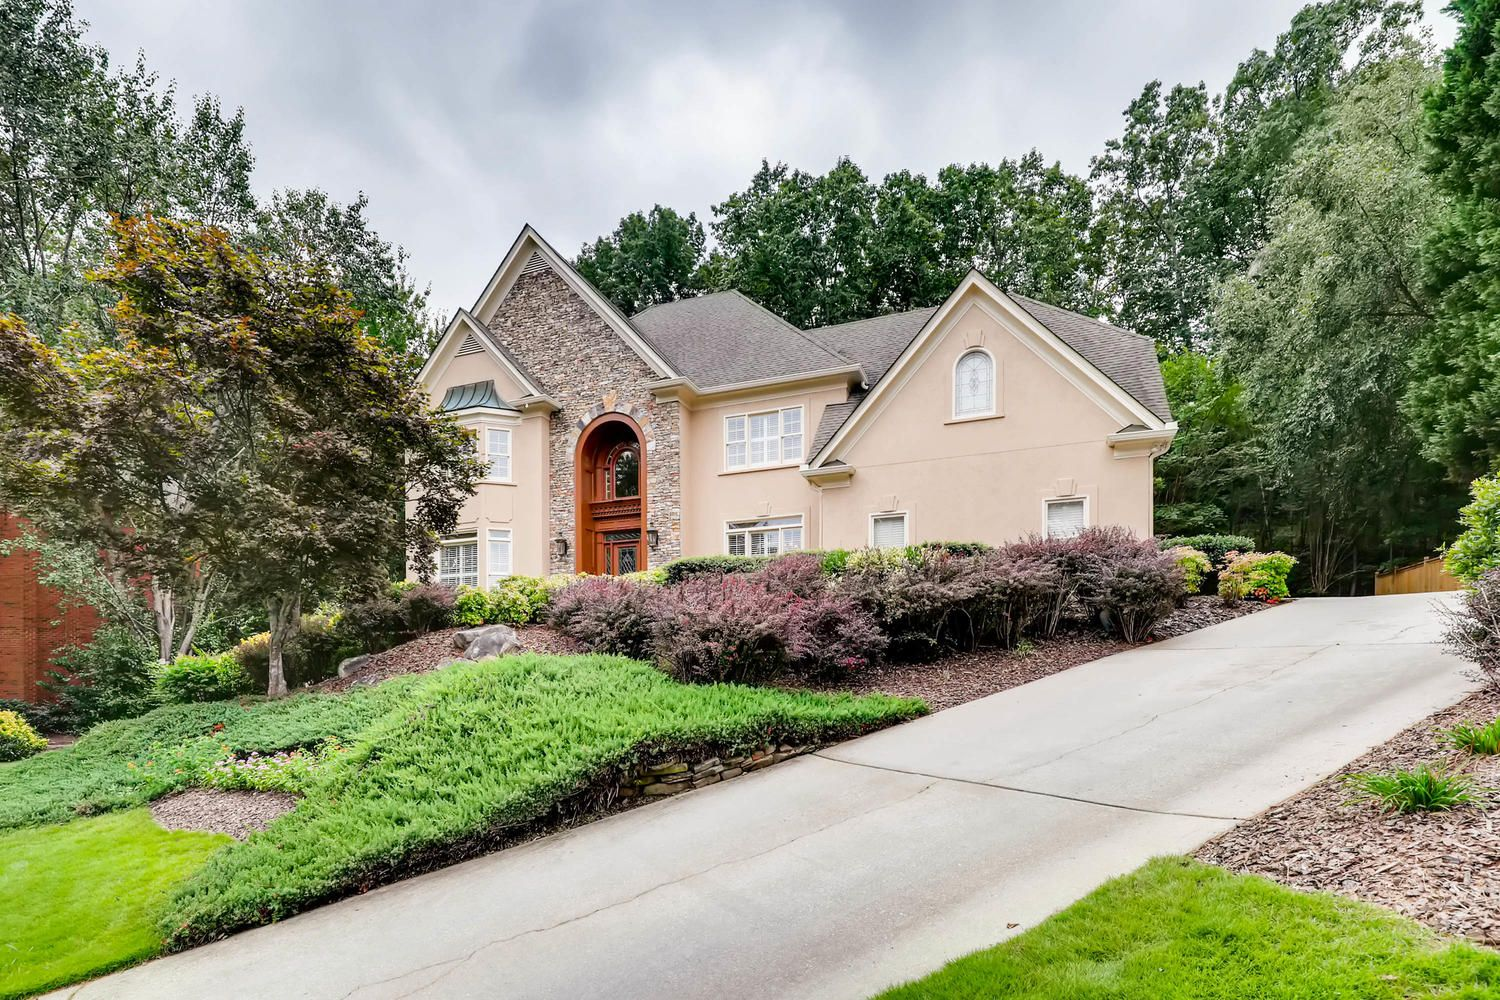 Search homes for sale in Norcross, View listing